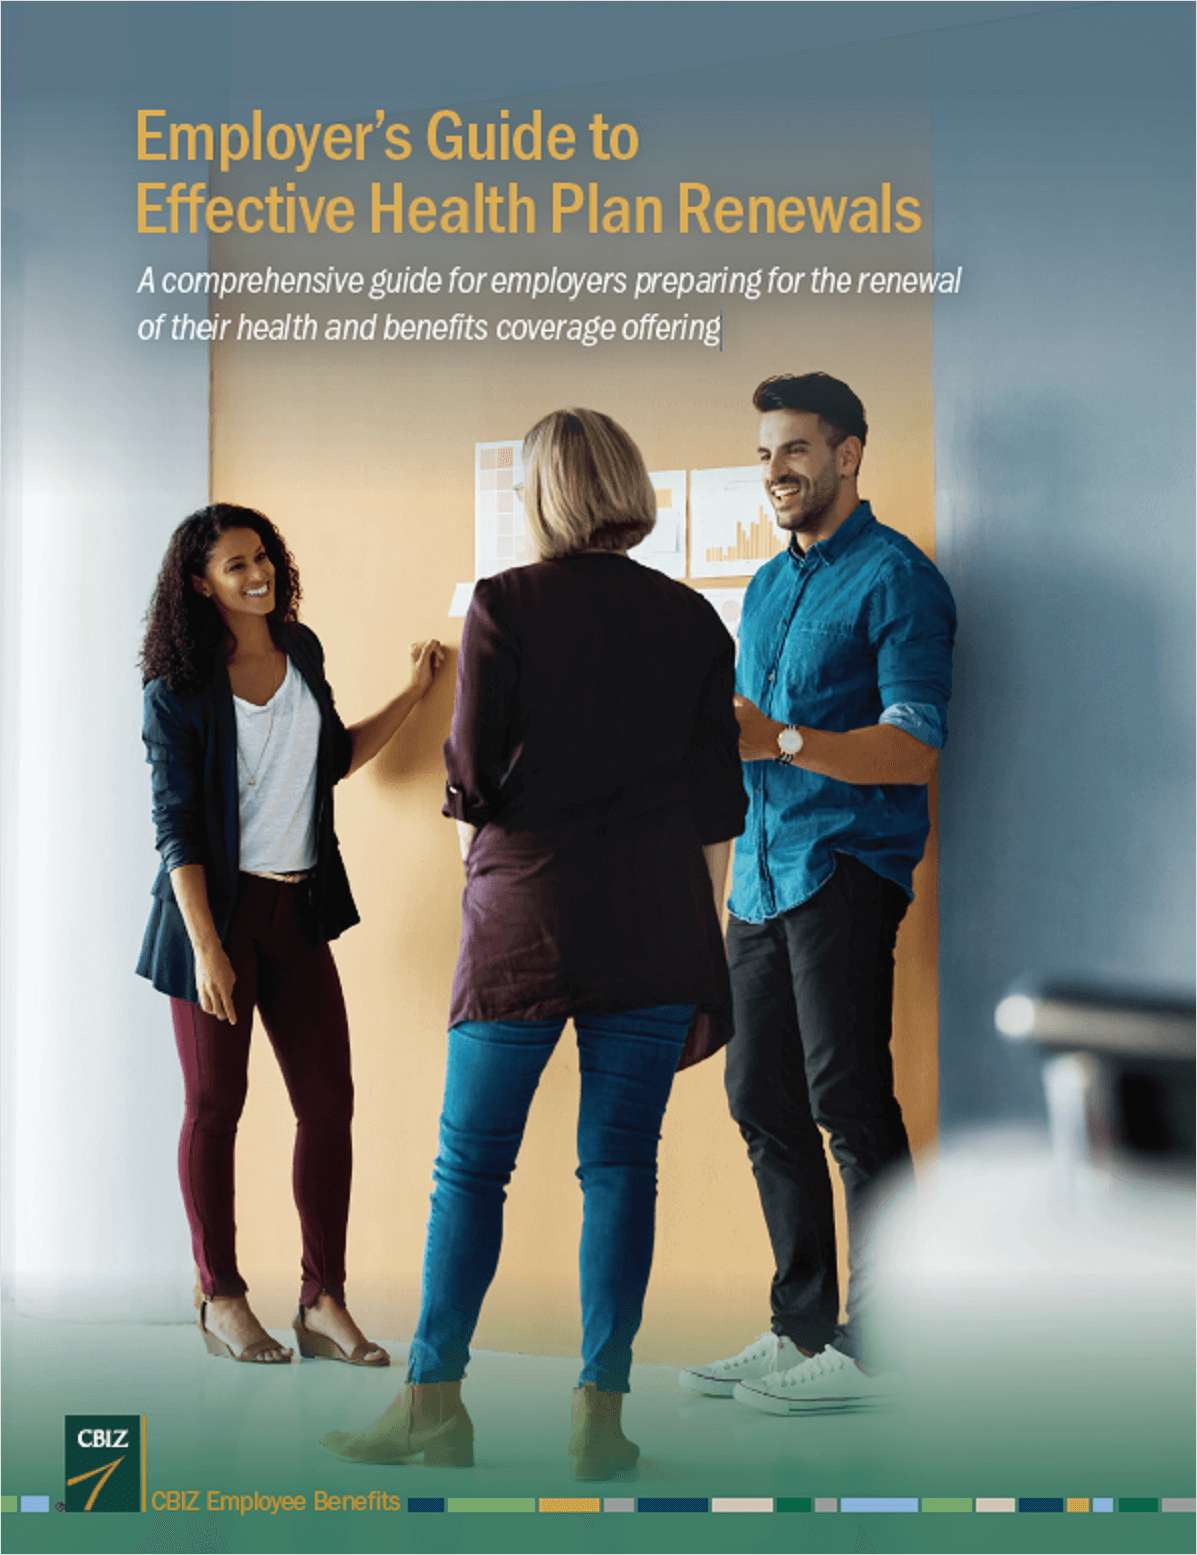 Employer's Guide to Effective Health Plan Renewals in 6 Months